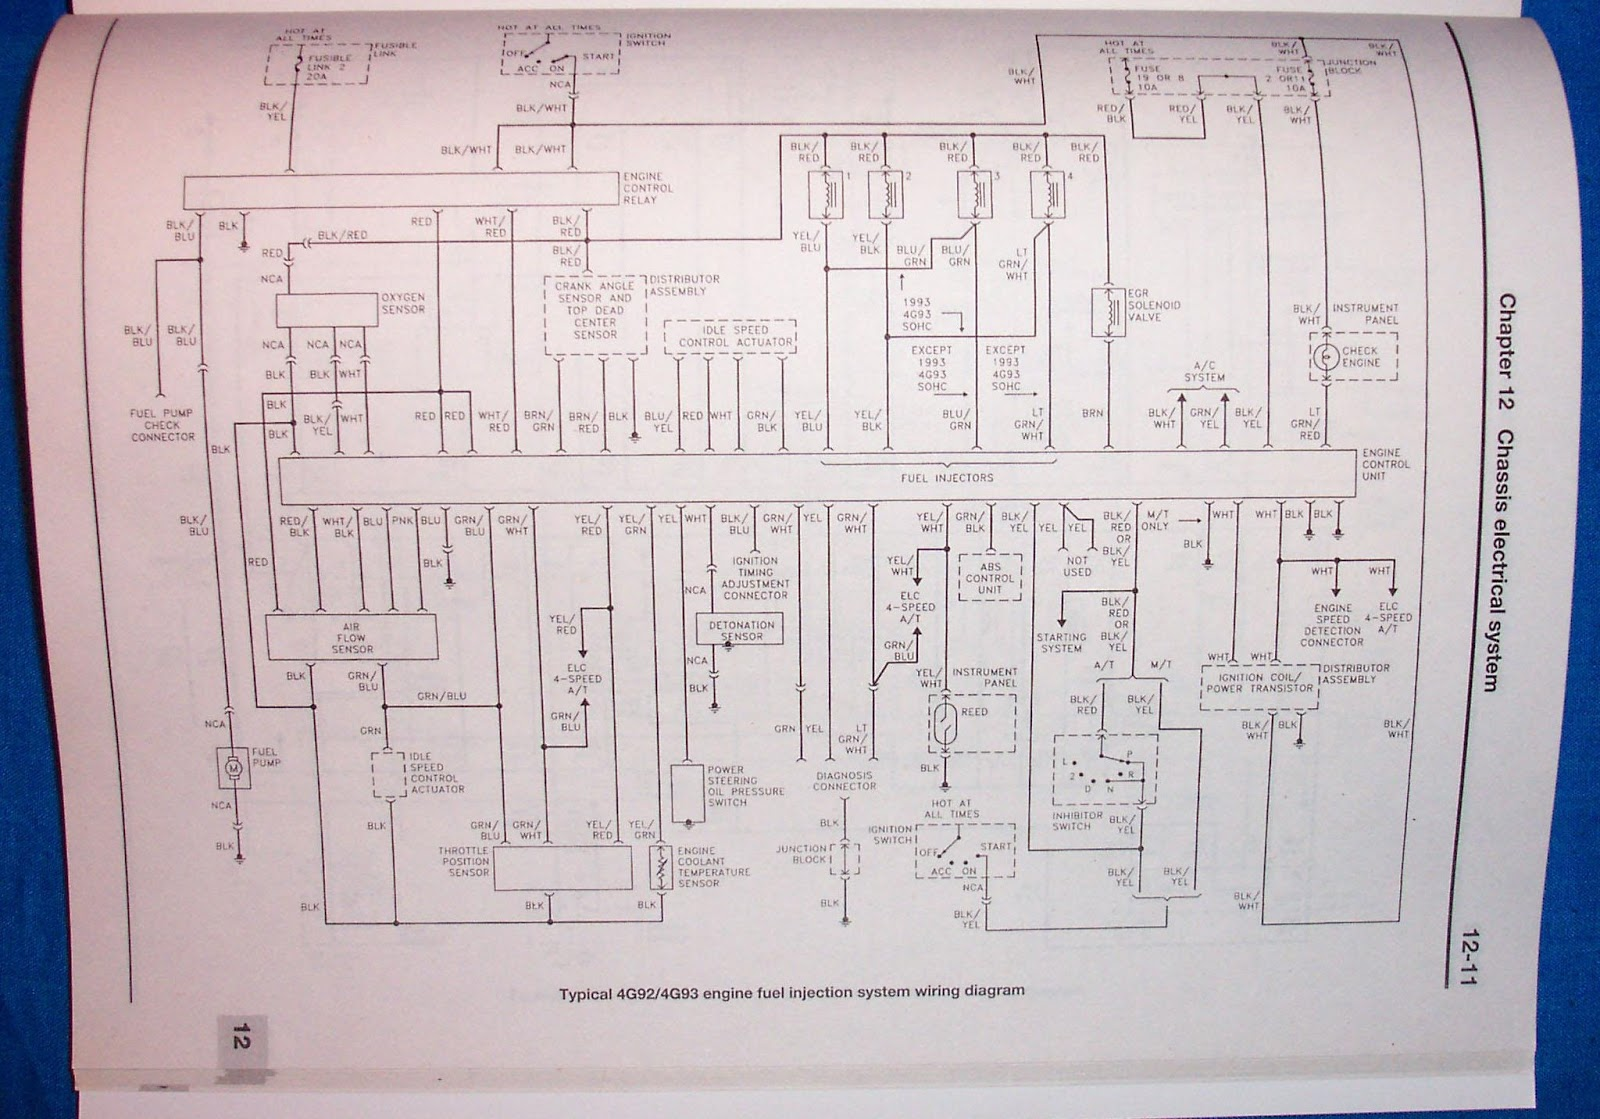 mitsubishi 4g63 engine diagram z3 wiring library diagrammitsubishi 4g63 engine diagram get free image about wiring diagram 4g63 wiring harness mitsubishi 4g63 engine diagram